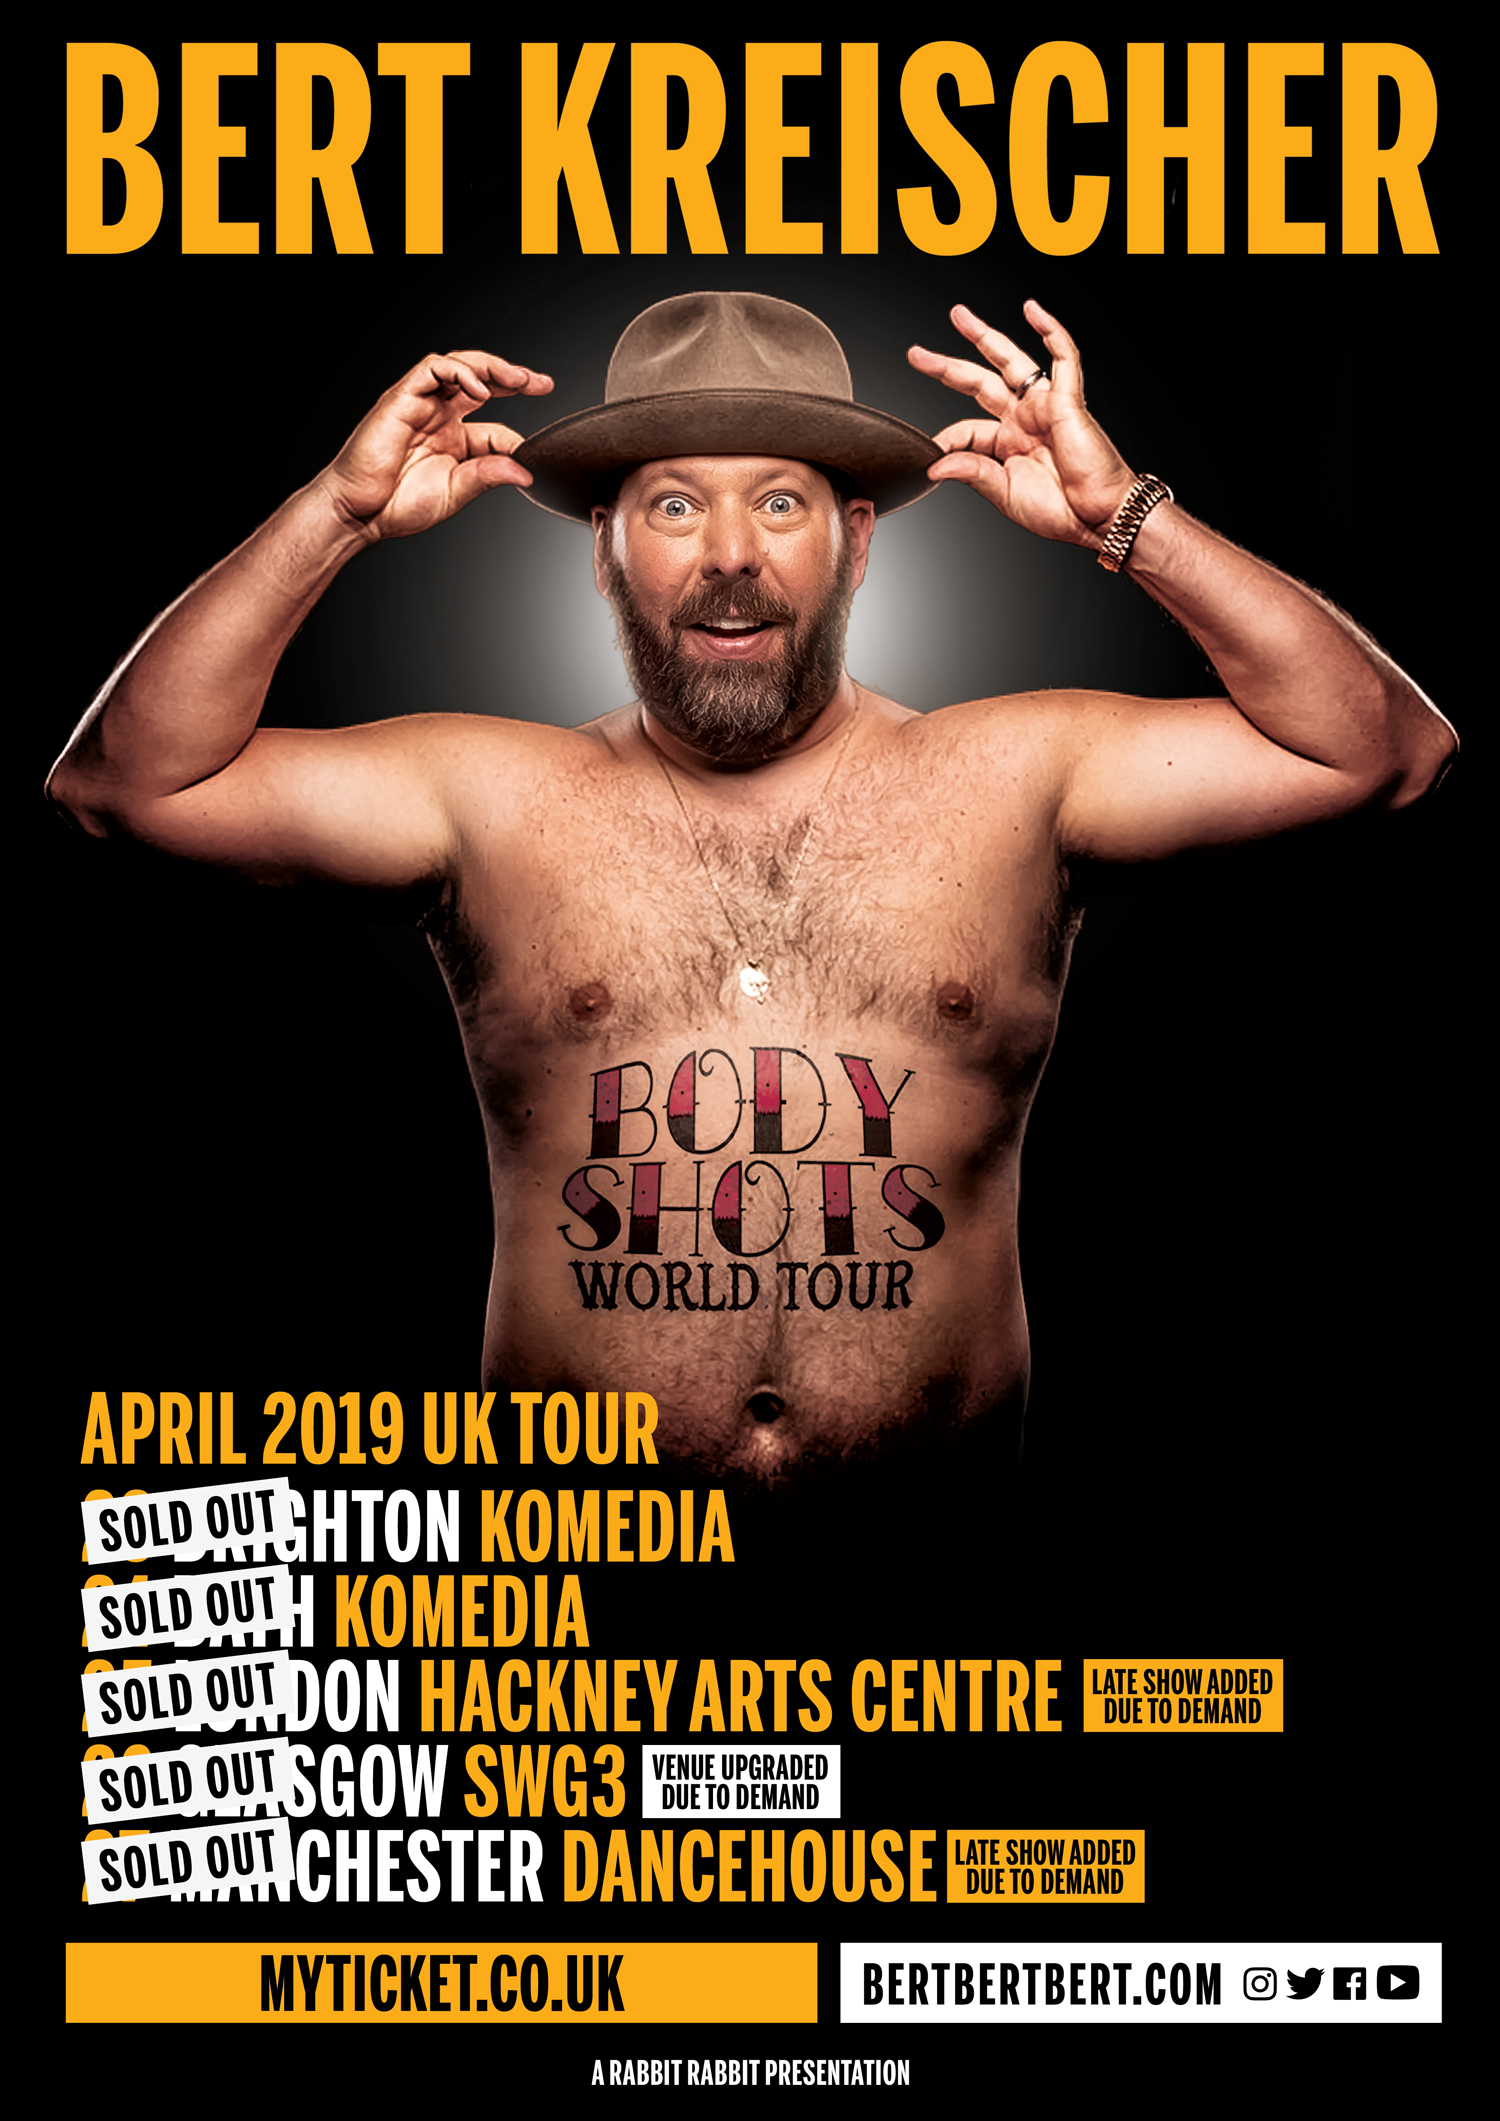 Bert Kreischer - The Body Shots Tour